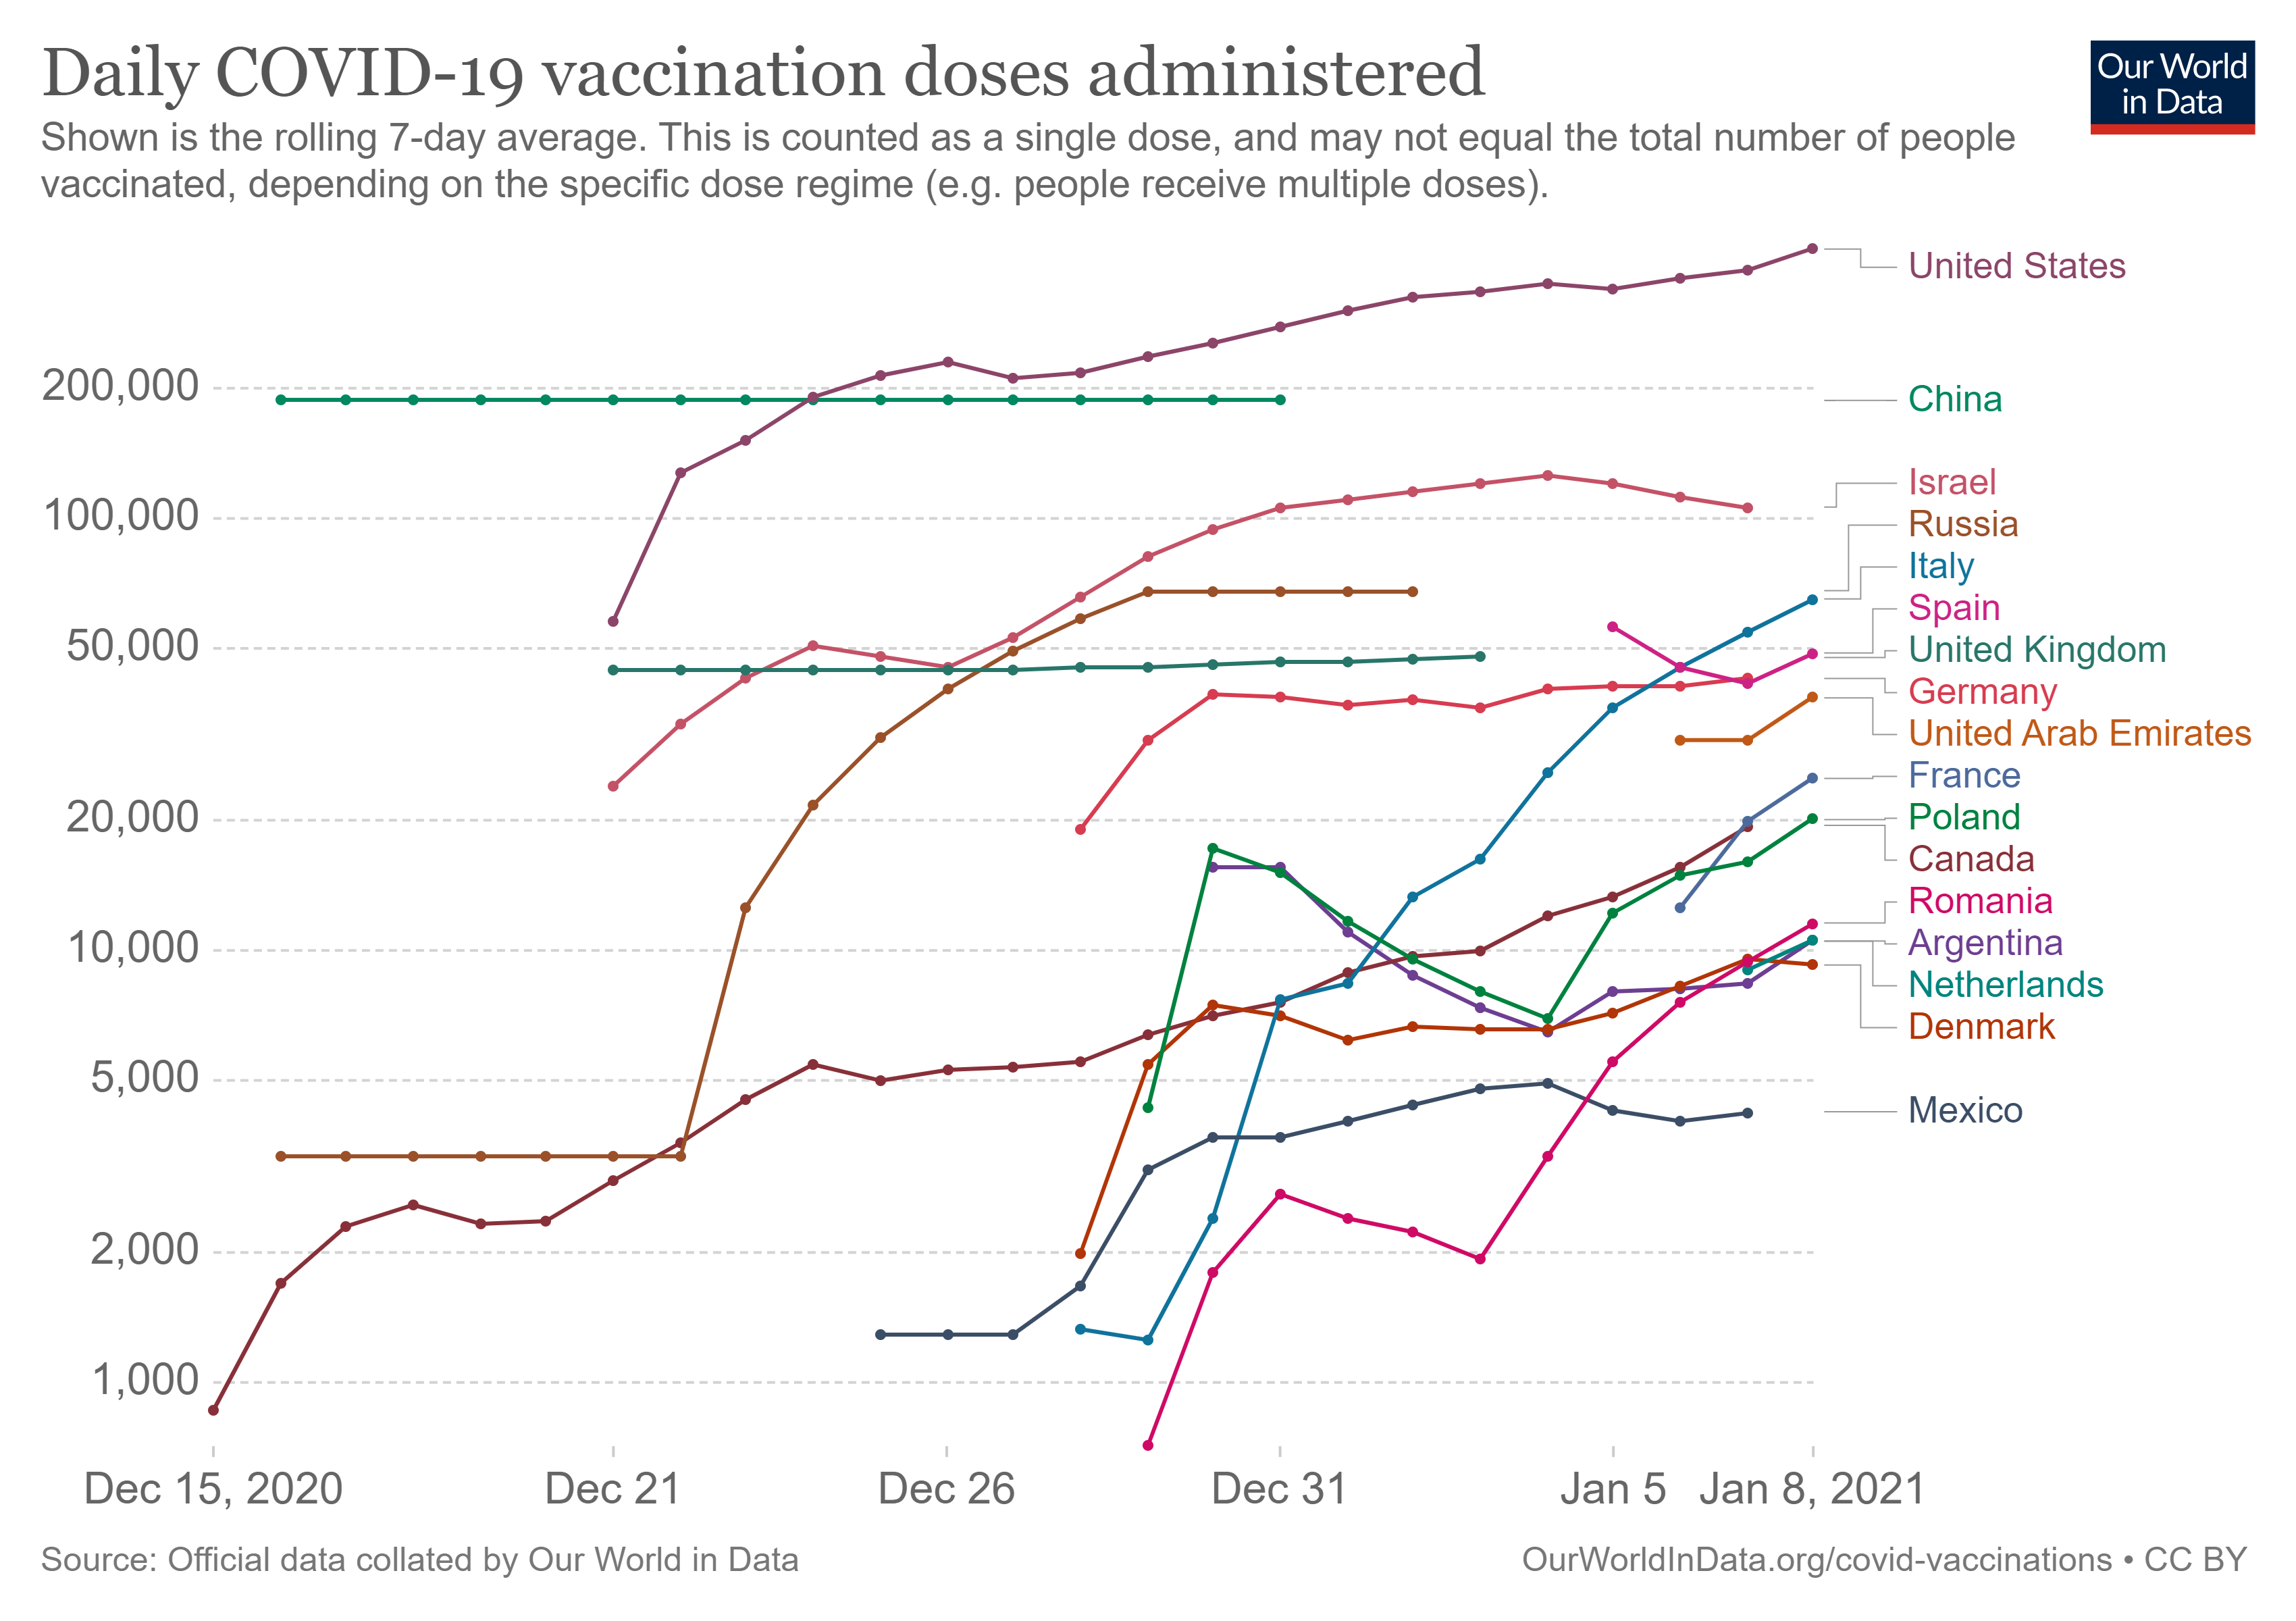 daily-covid-19-vaccination-doses-1.png